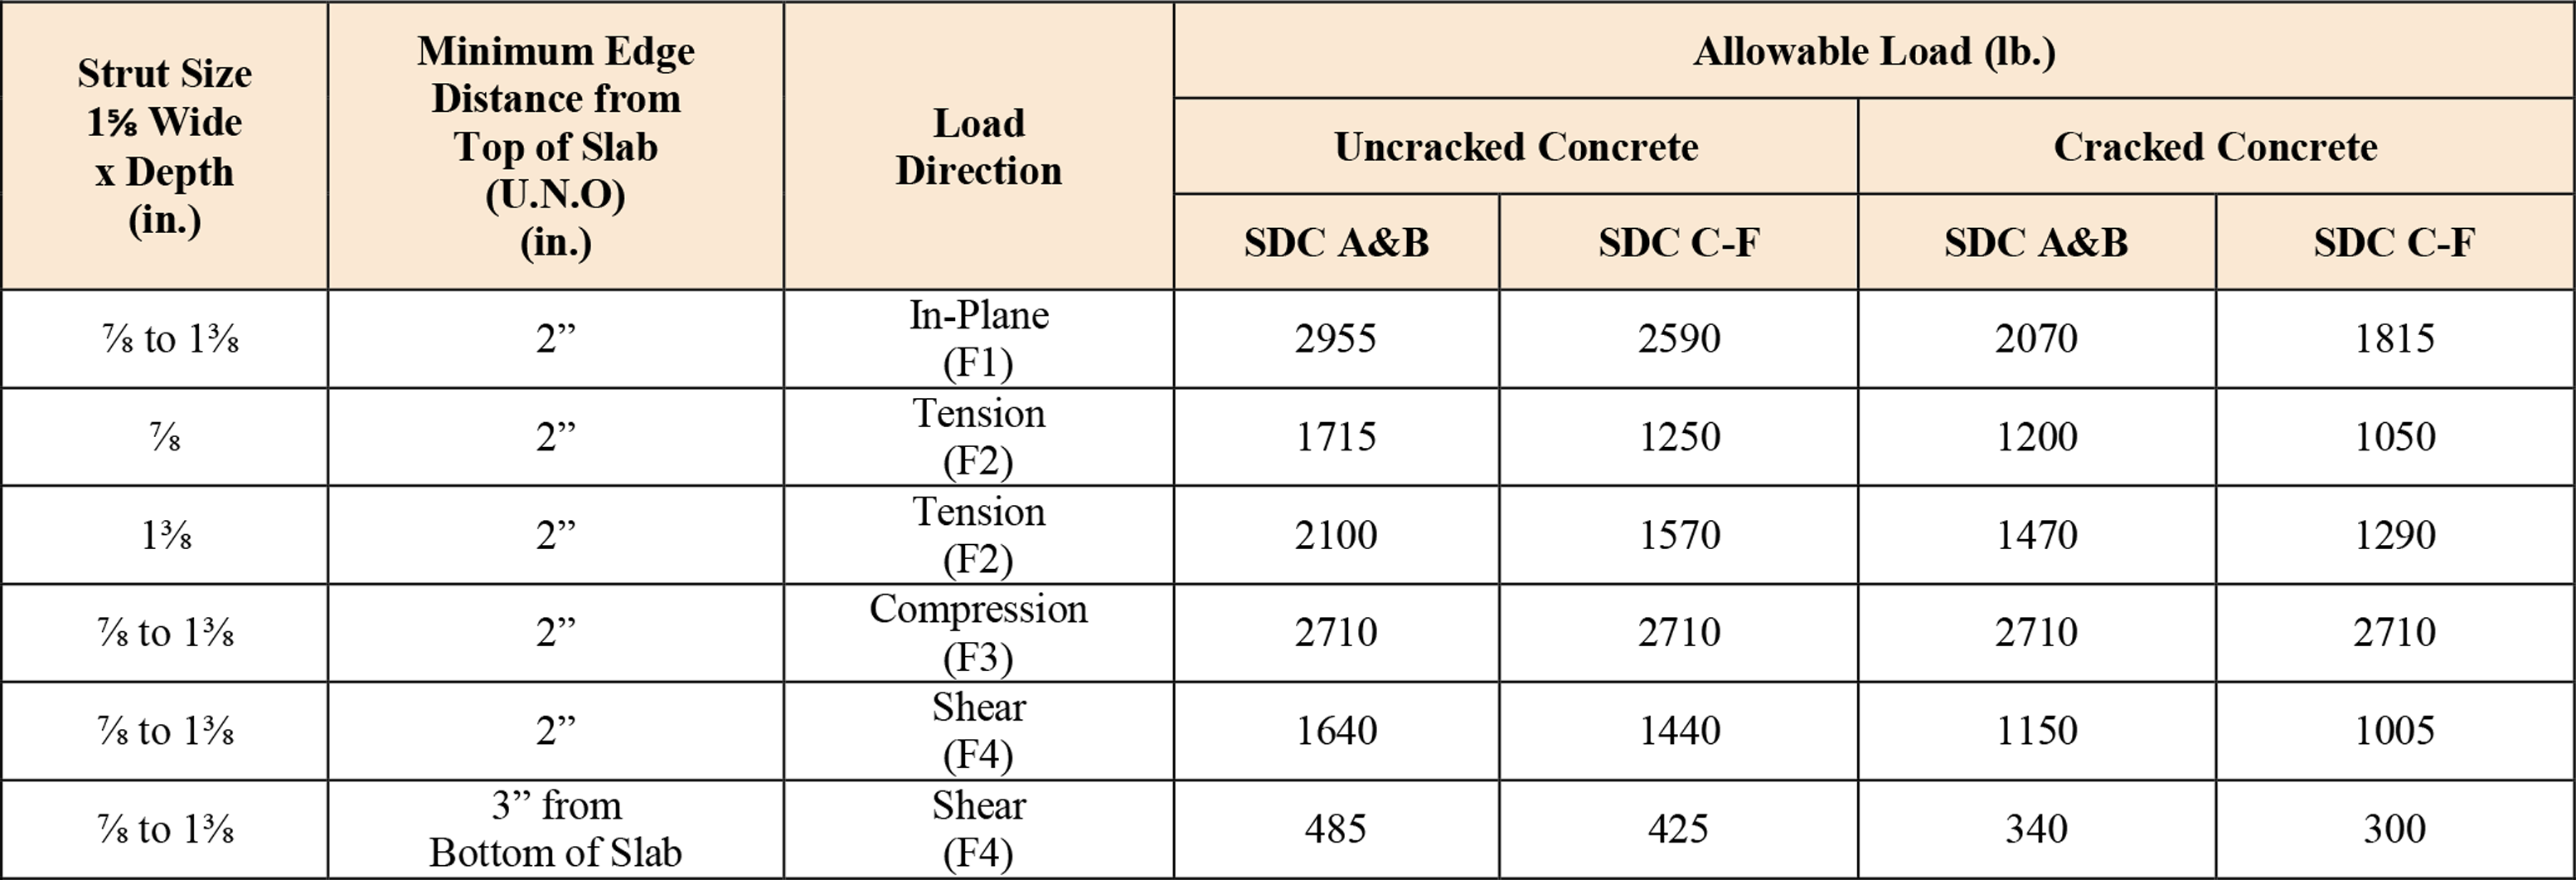 Concrete Insert Allowable Load Embedded to Concrete